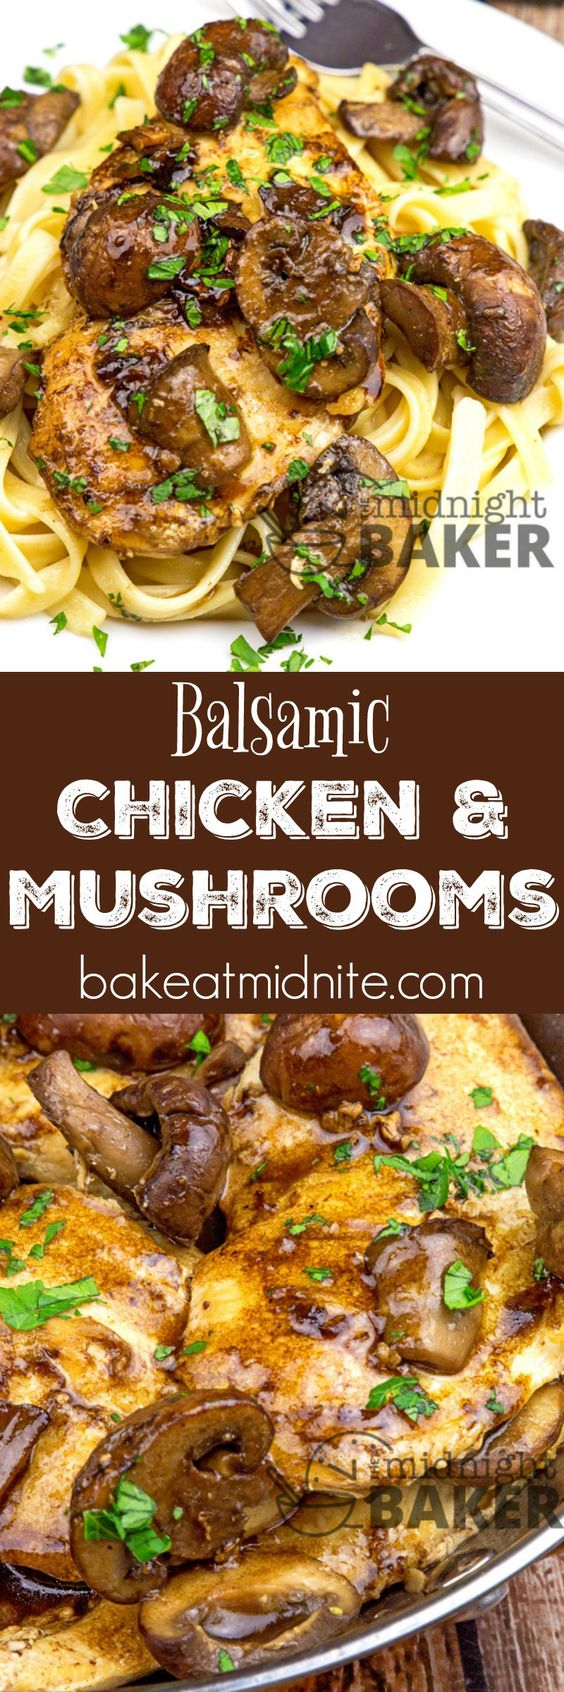 30 Minute Balsamic Chicken & Mushrooms Dinner Recipe via Midnight Baker - Delicious restaurant-quality balsamic chicken dinner ready in under 30 minutes! - The BEST 30 Minute Meals Recipes - Easy, Quick and Delicious Family Friendly Lunch and Dinner Ideas #30minutemeals #30minutedinners #thirtyminutedinners #30minuterecipes #fastrecipes #easyrecipes #quickrecipes #mealprep